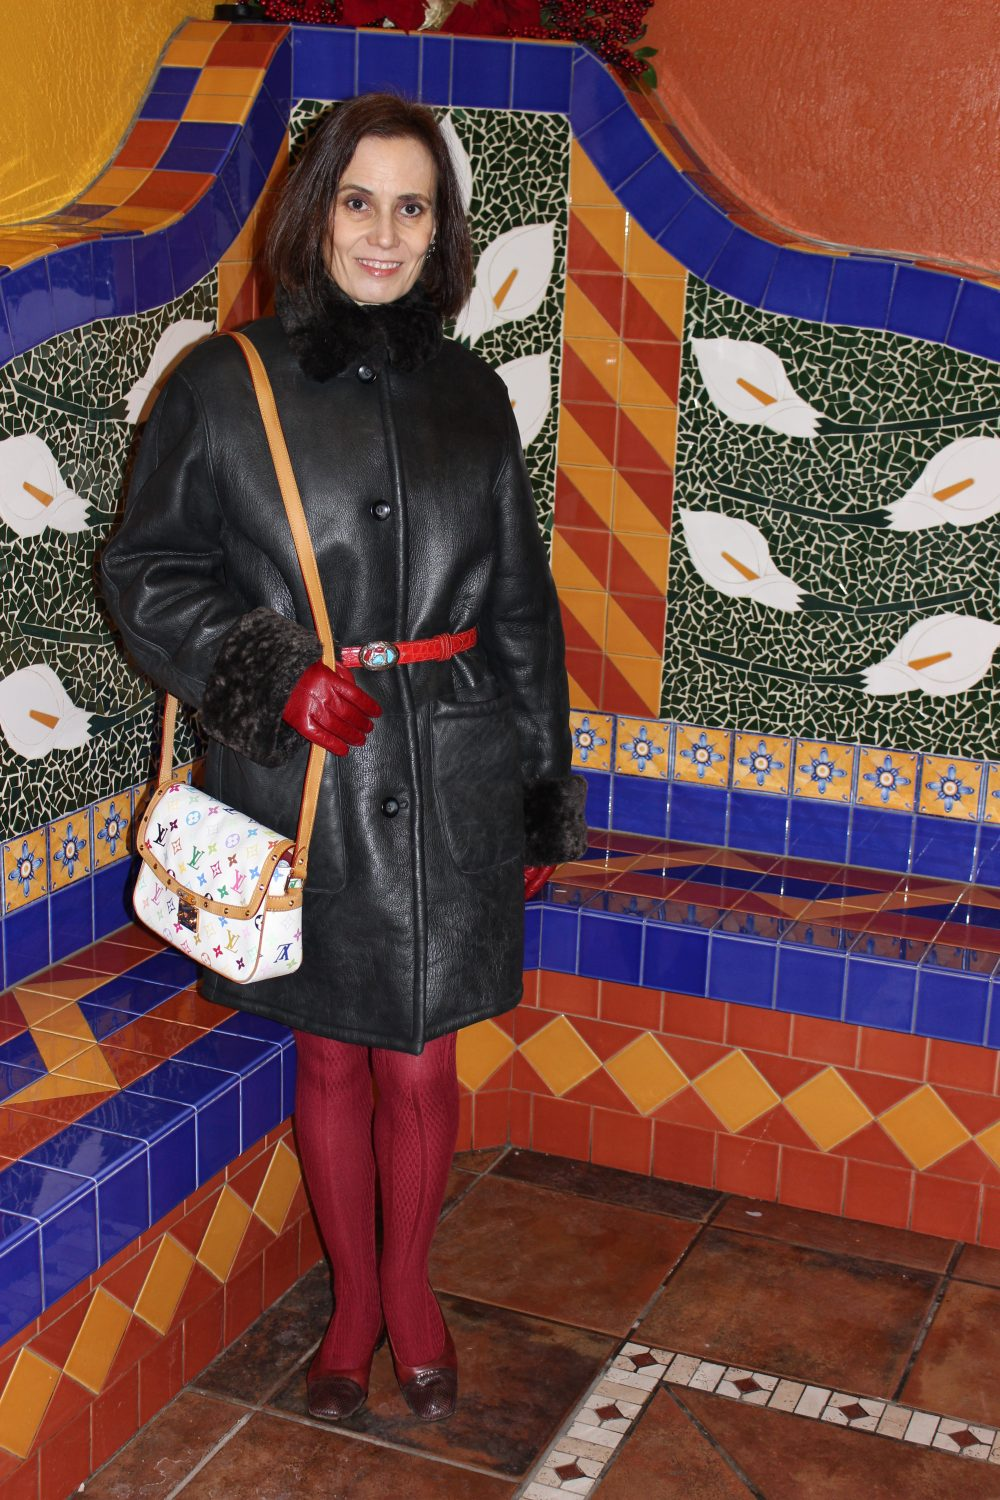 shearling coat with red belt, gloves, tight and shoes and a multi-color LV saddle bag